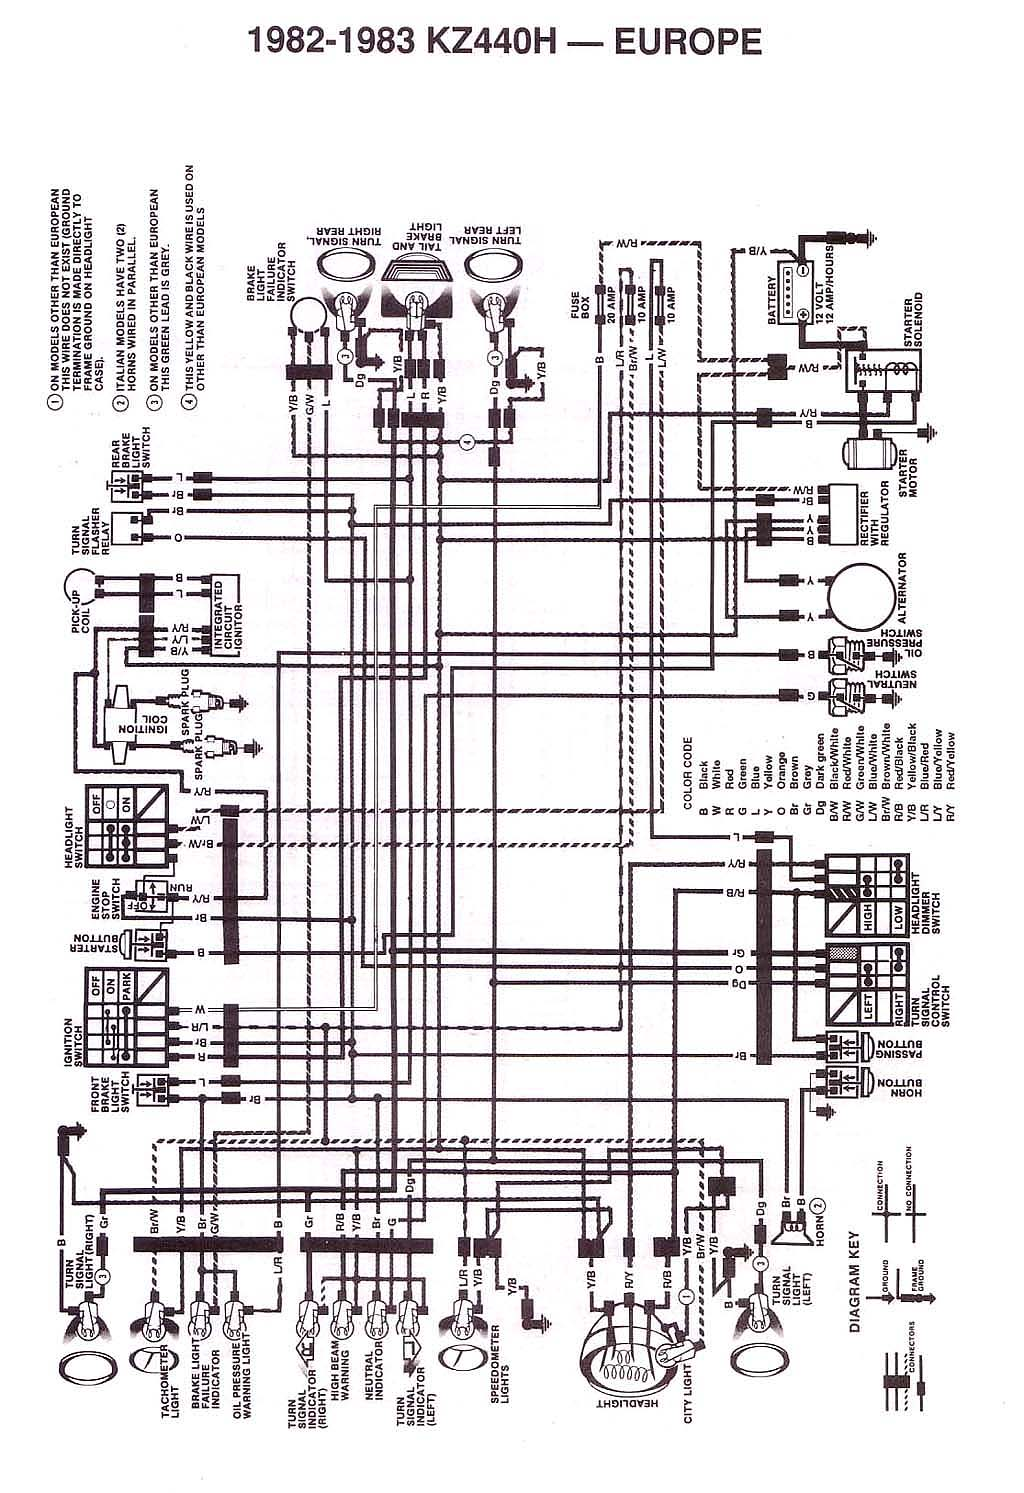 Kawasaki Snowmobile 400 Wiring Diagram And Schematics Electrical 81 Kz440 Get Free Image About 1980 Kz750